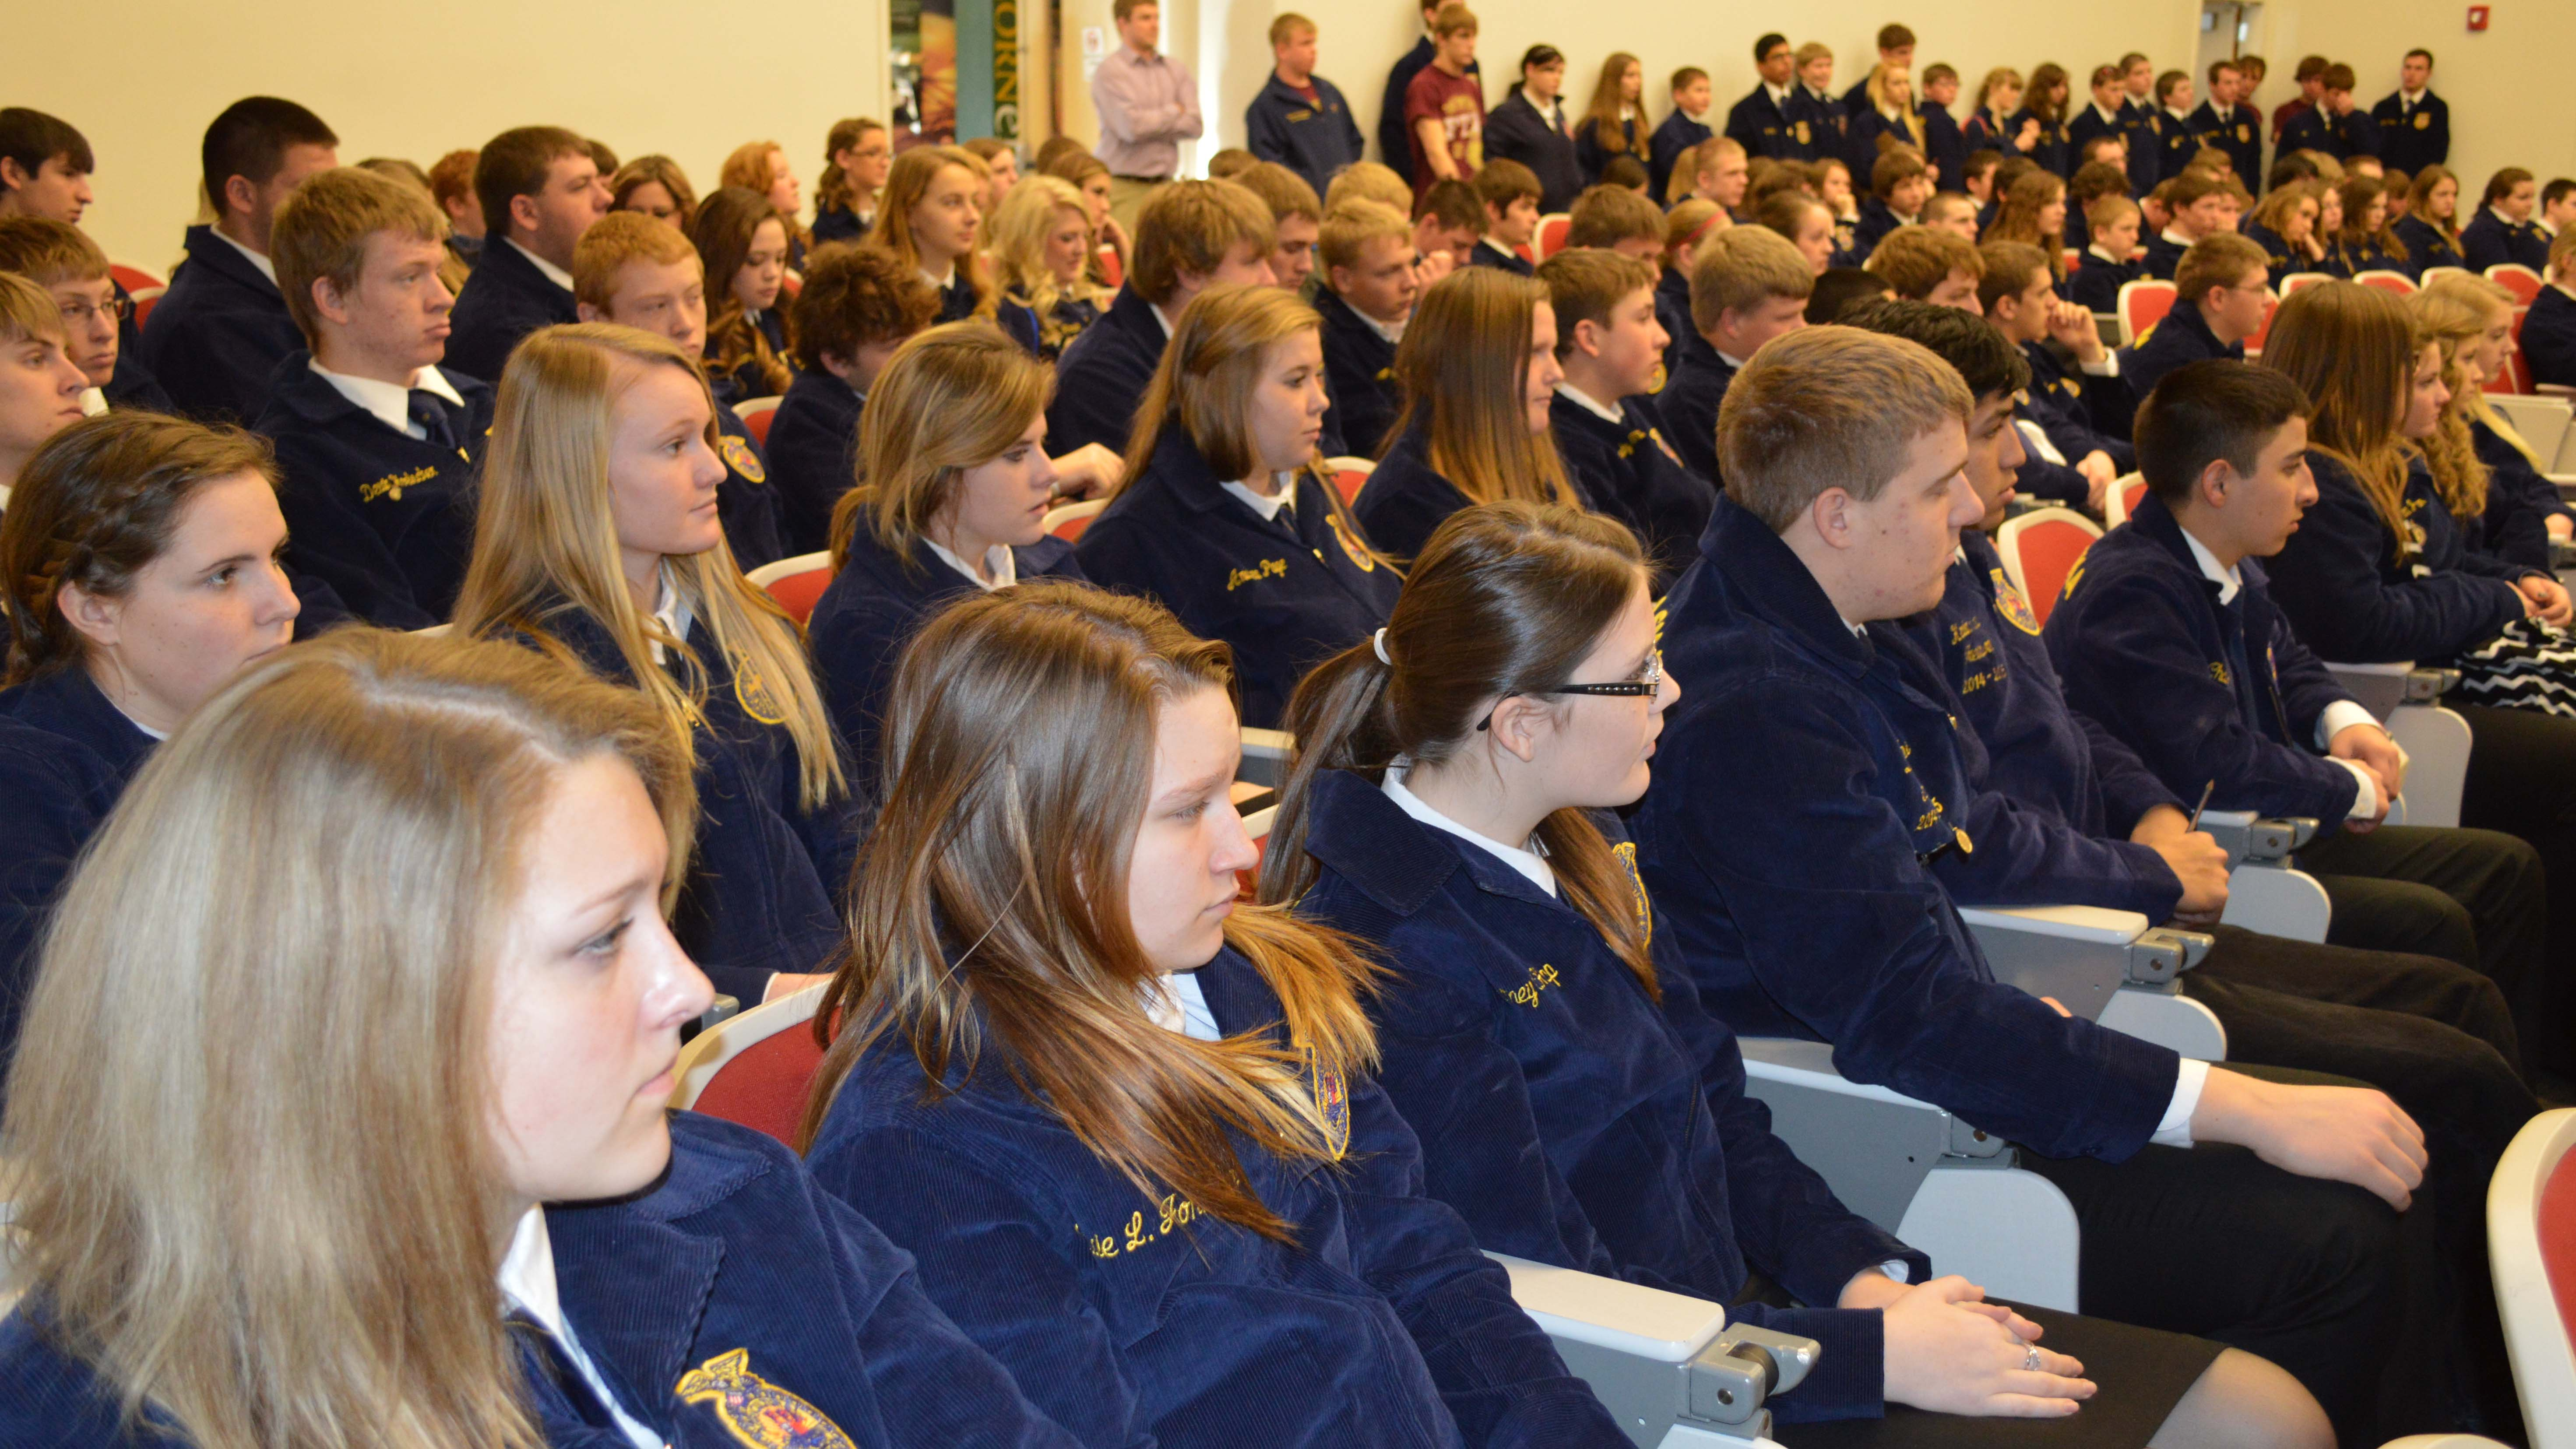 FFA students fill the auditorium during a district FFA contest at the Nebraska College of Technical Agriculture in Curtis. (NCTA News photo)